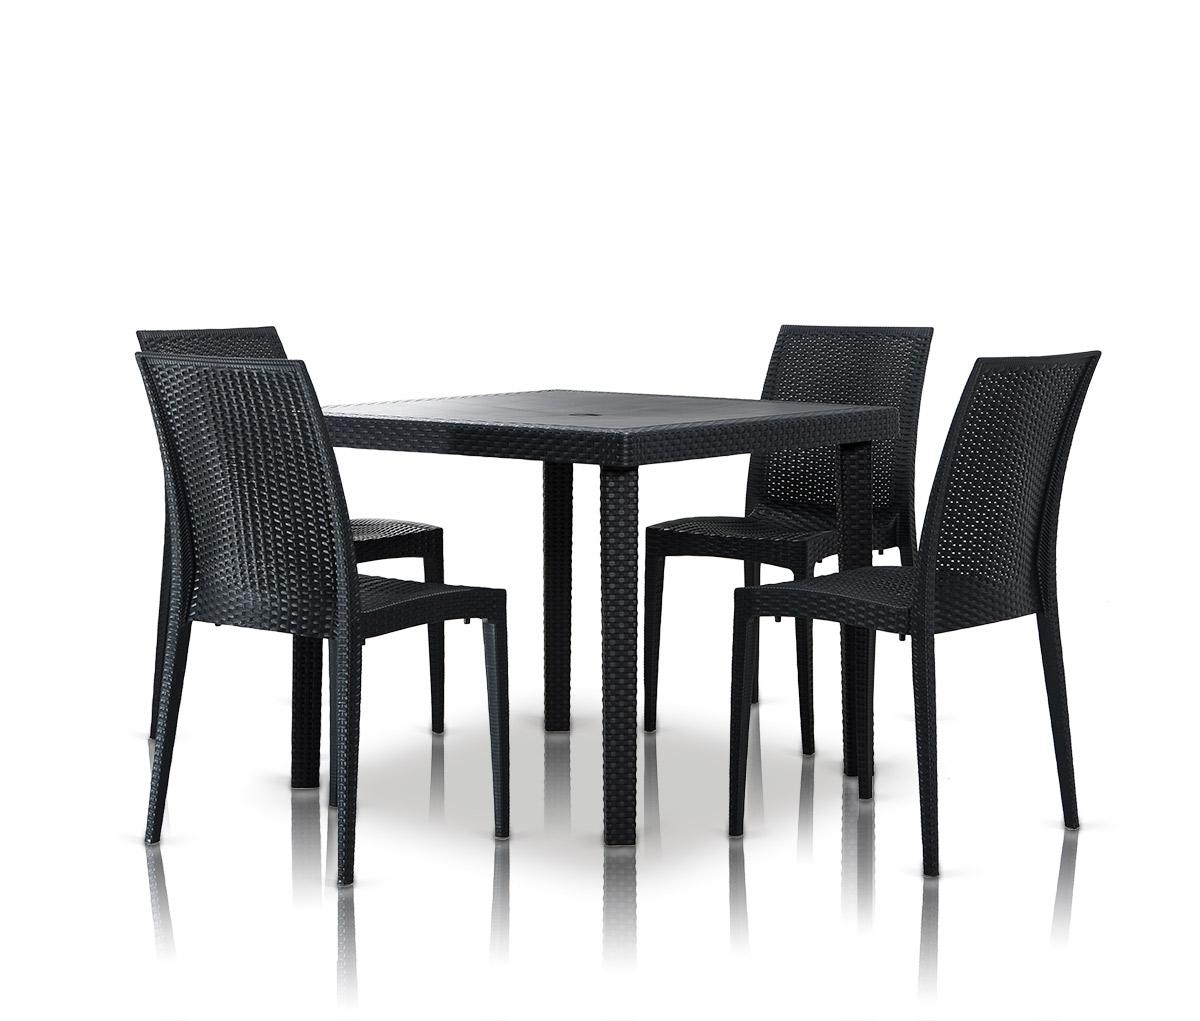 Bistrot Modern Square Dining Table Set VGIGBISTROT TABLESQUARE SET